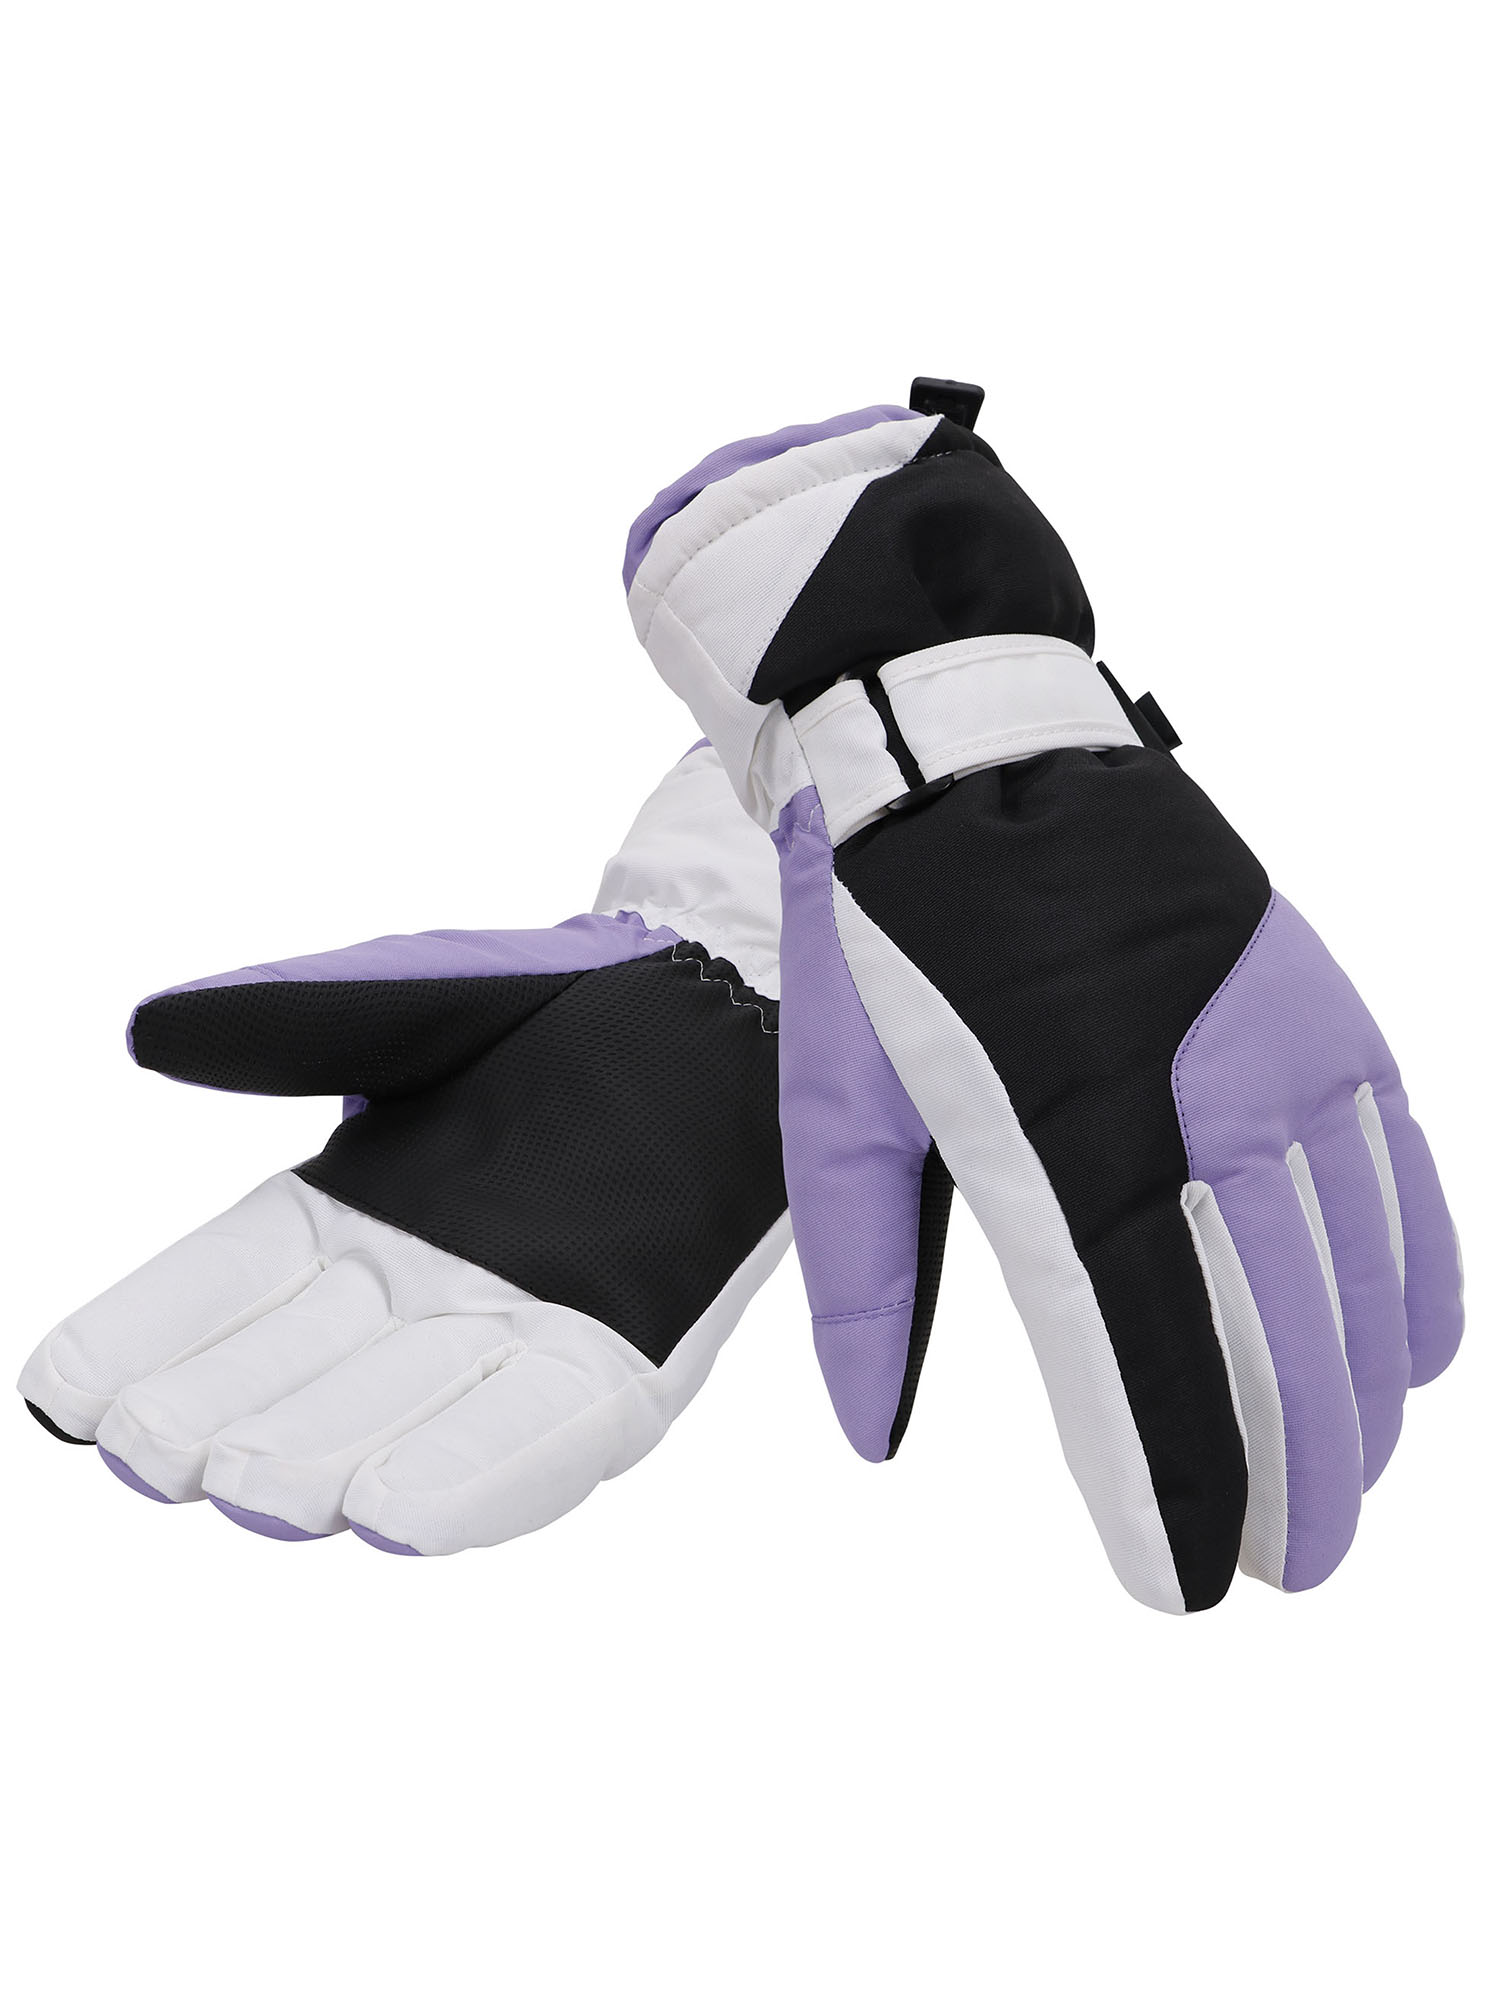 Simplicity Women's Thinsulate Lined Waterproof Outdoor Ski Gloves, M, Purple